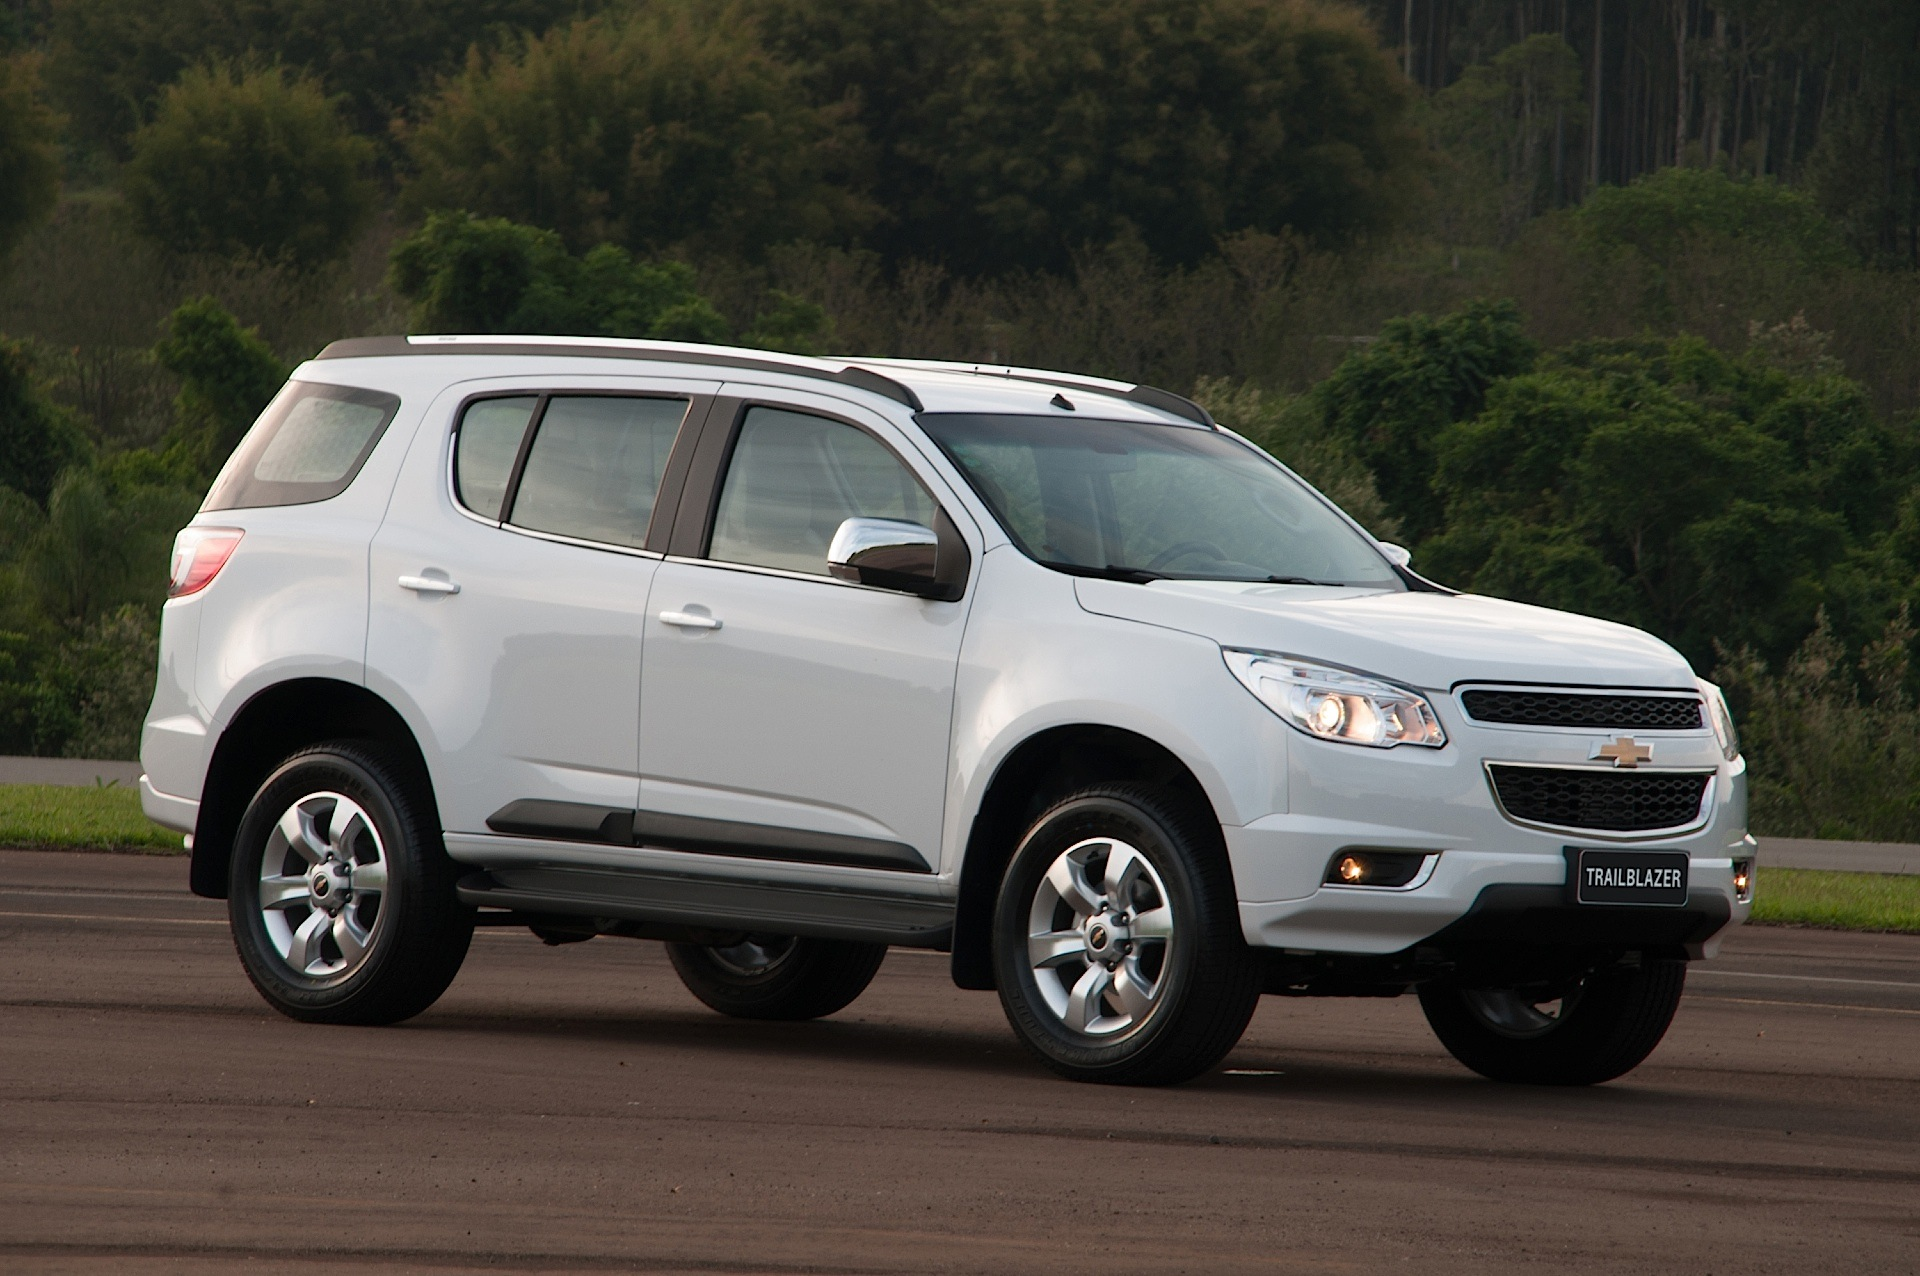 CHEVROLET TrailBlazer - 2012, 2013, 2014, 2015, 2016, 2017 ...